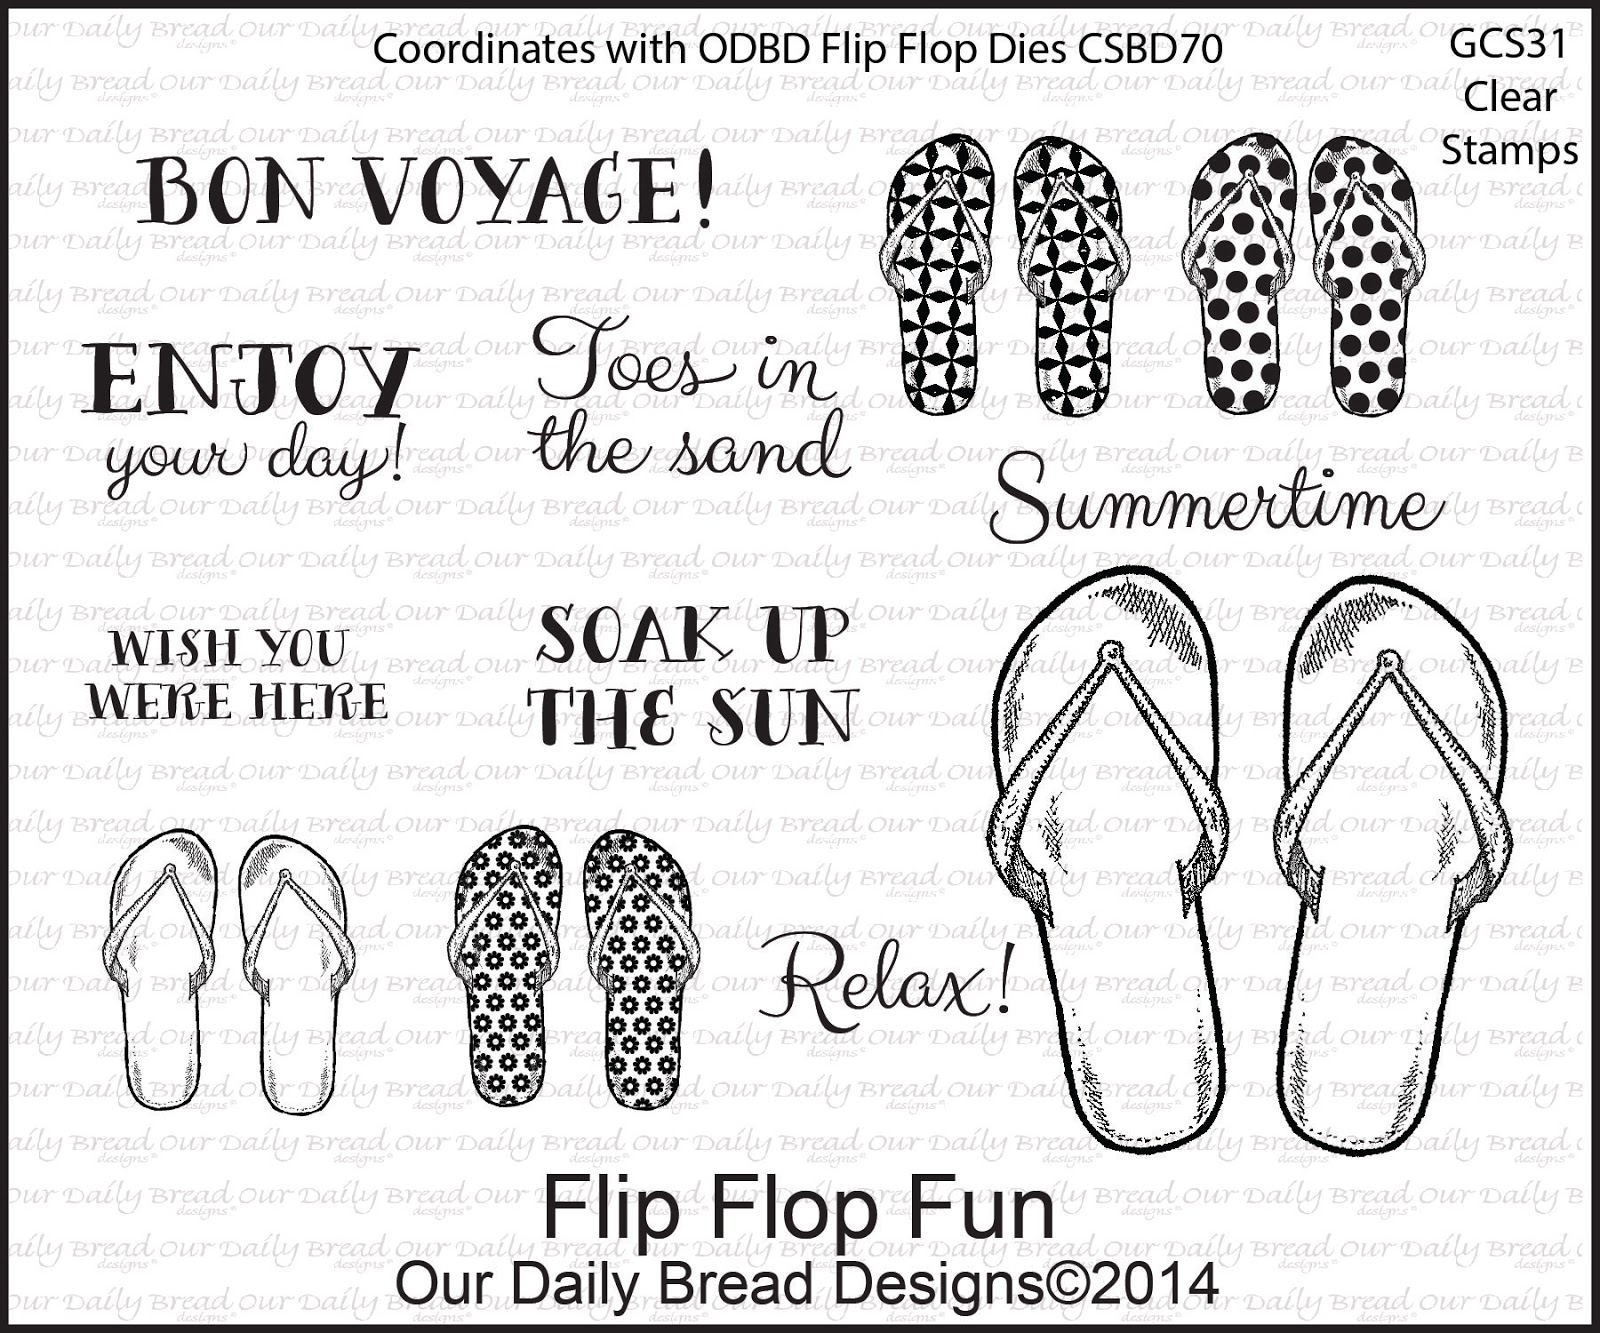 https://www.ourdailybreaddesigns.com/index.php/gcs31-fli-flop-fun-clear-stamps.html